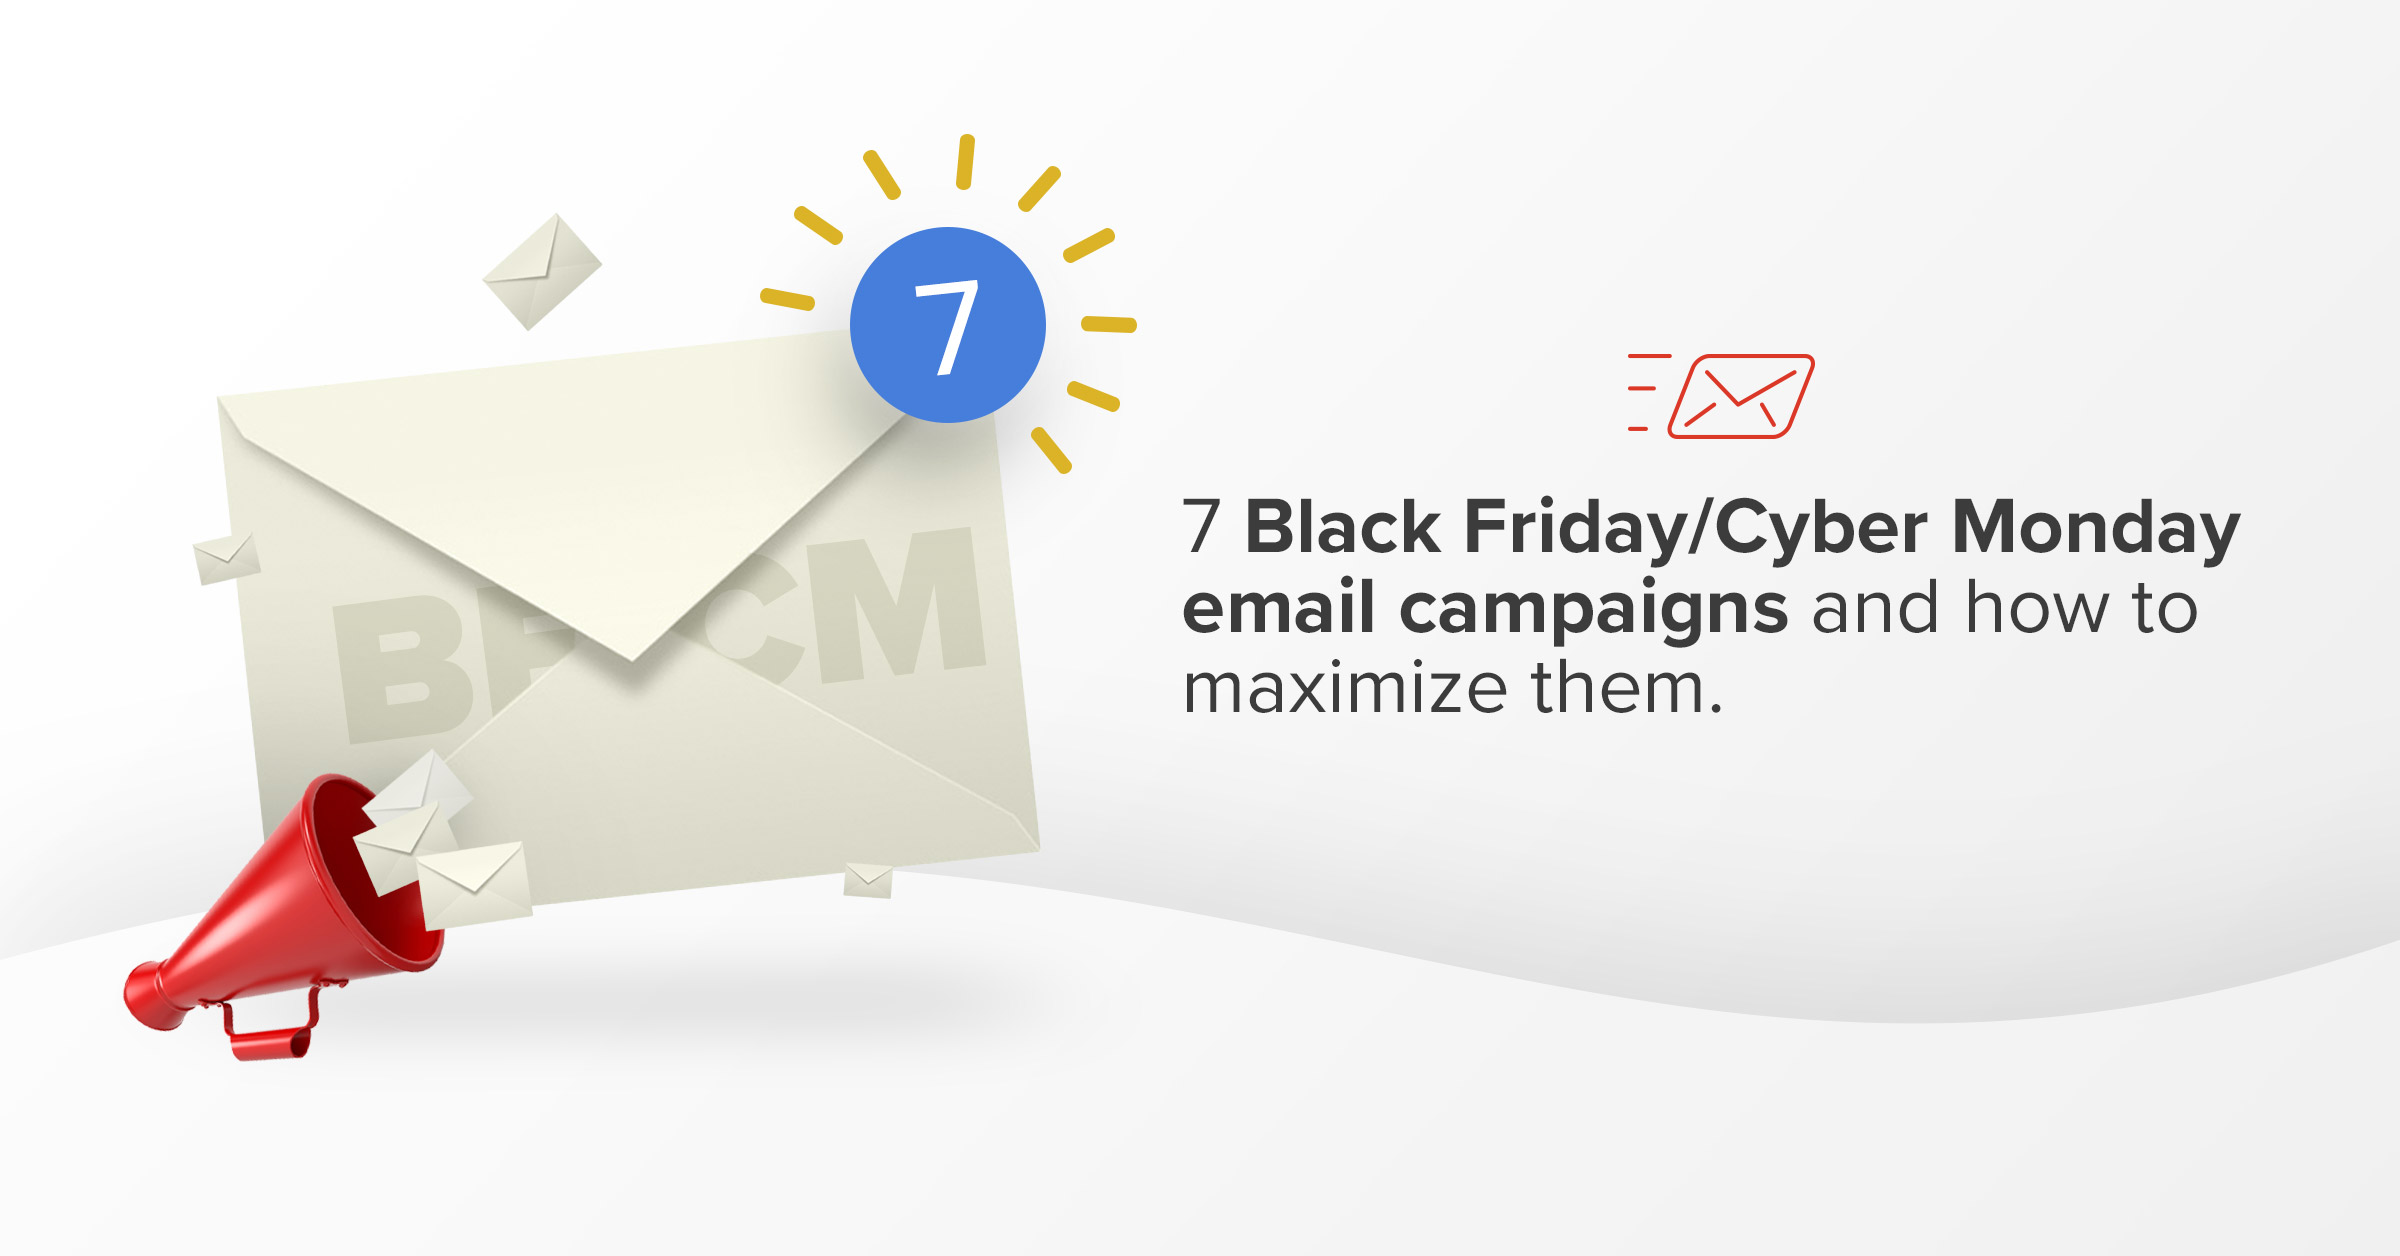 Black Friday email marketing